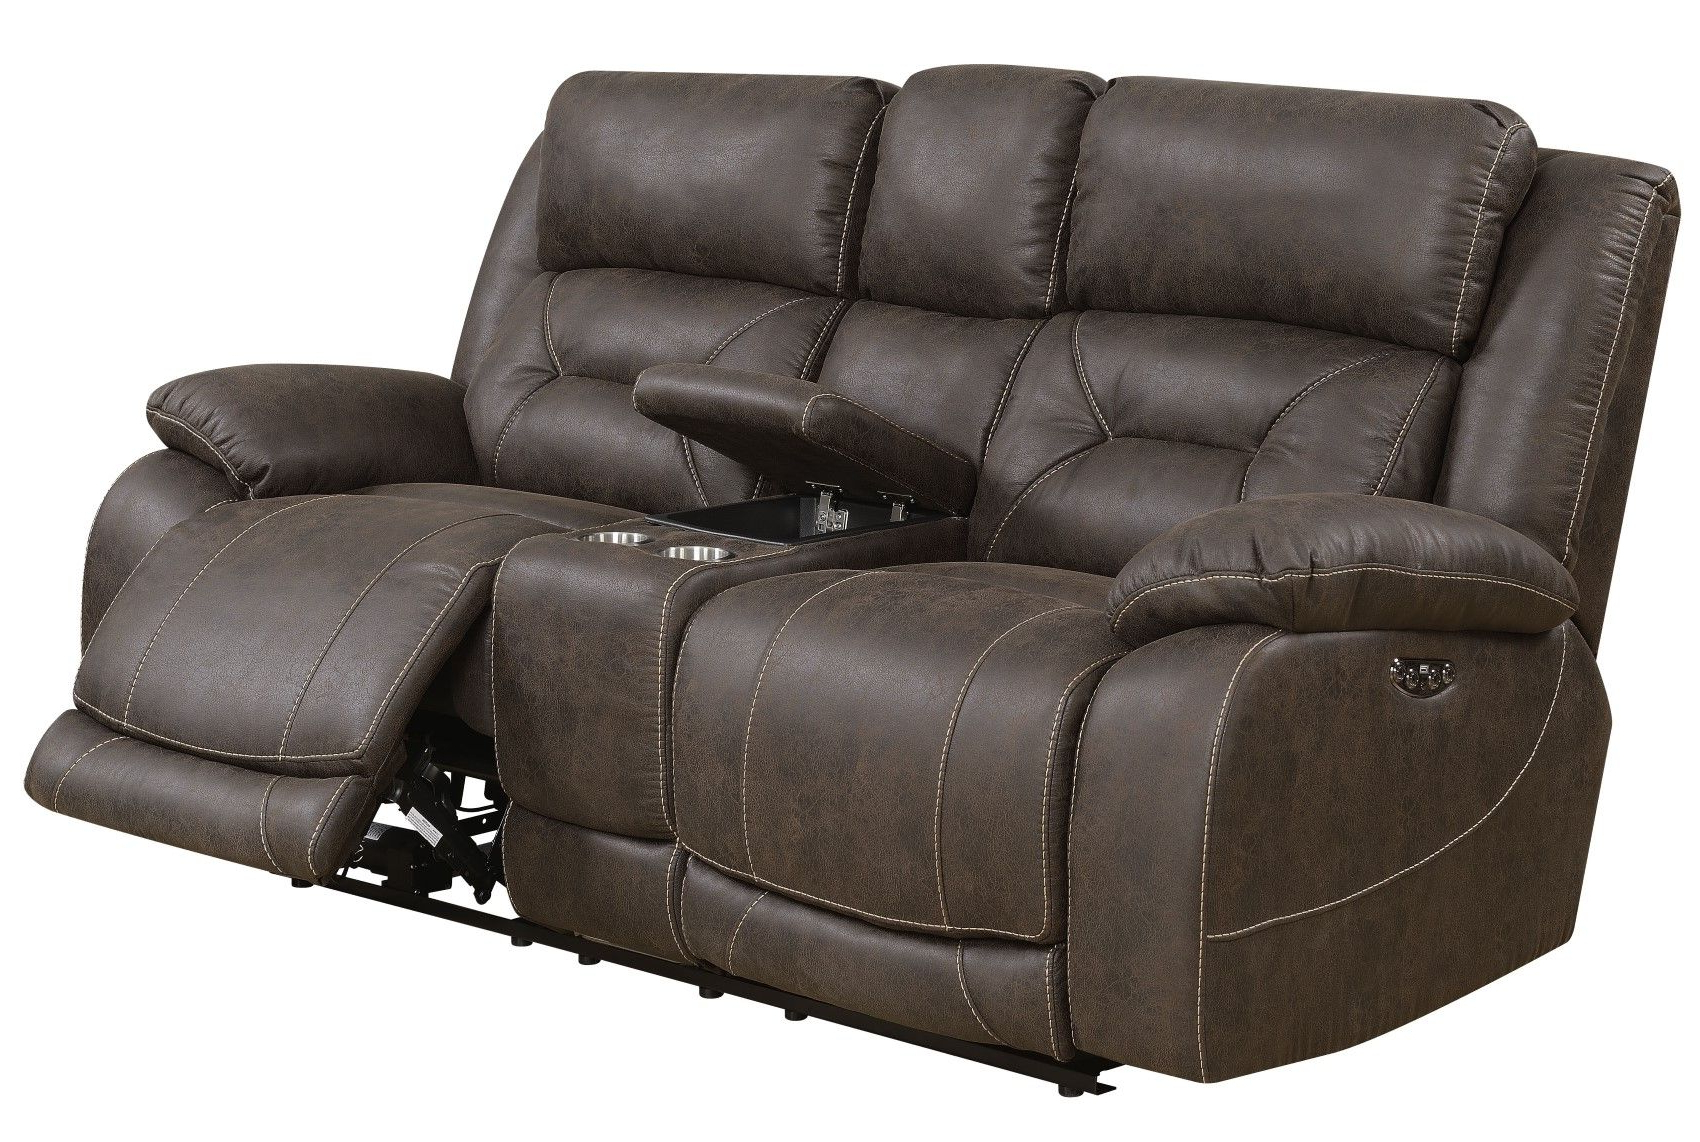 Aria Power Recliner Sofa Set With Power Head Rest In With Regard To Popular Expedition Brown Power Reclining Sofas (View 2 of 15)